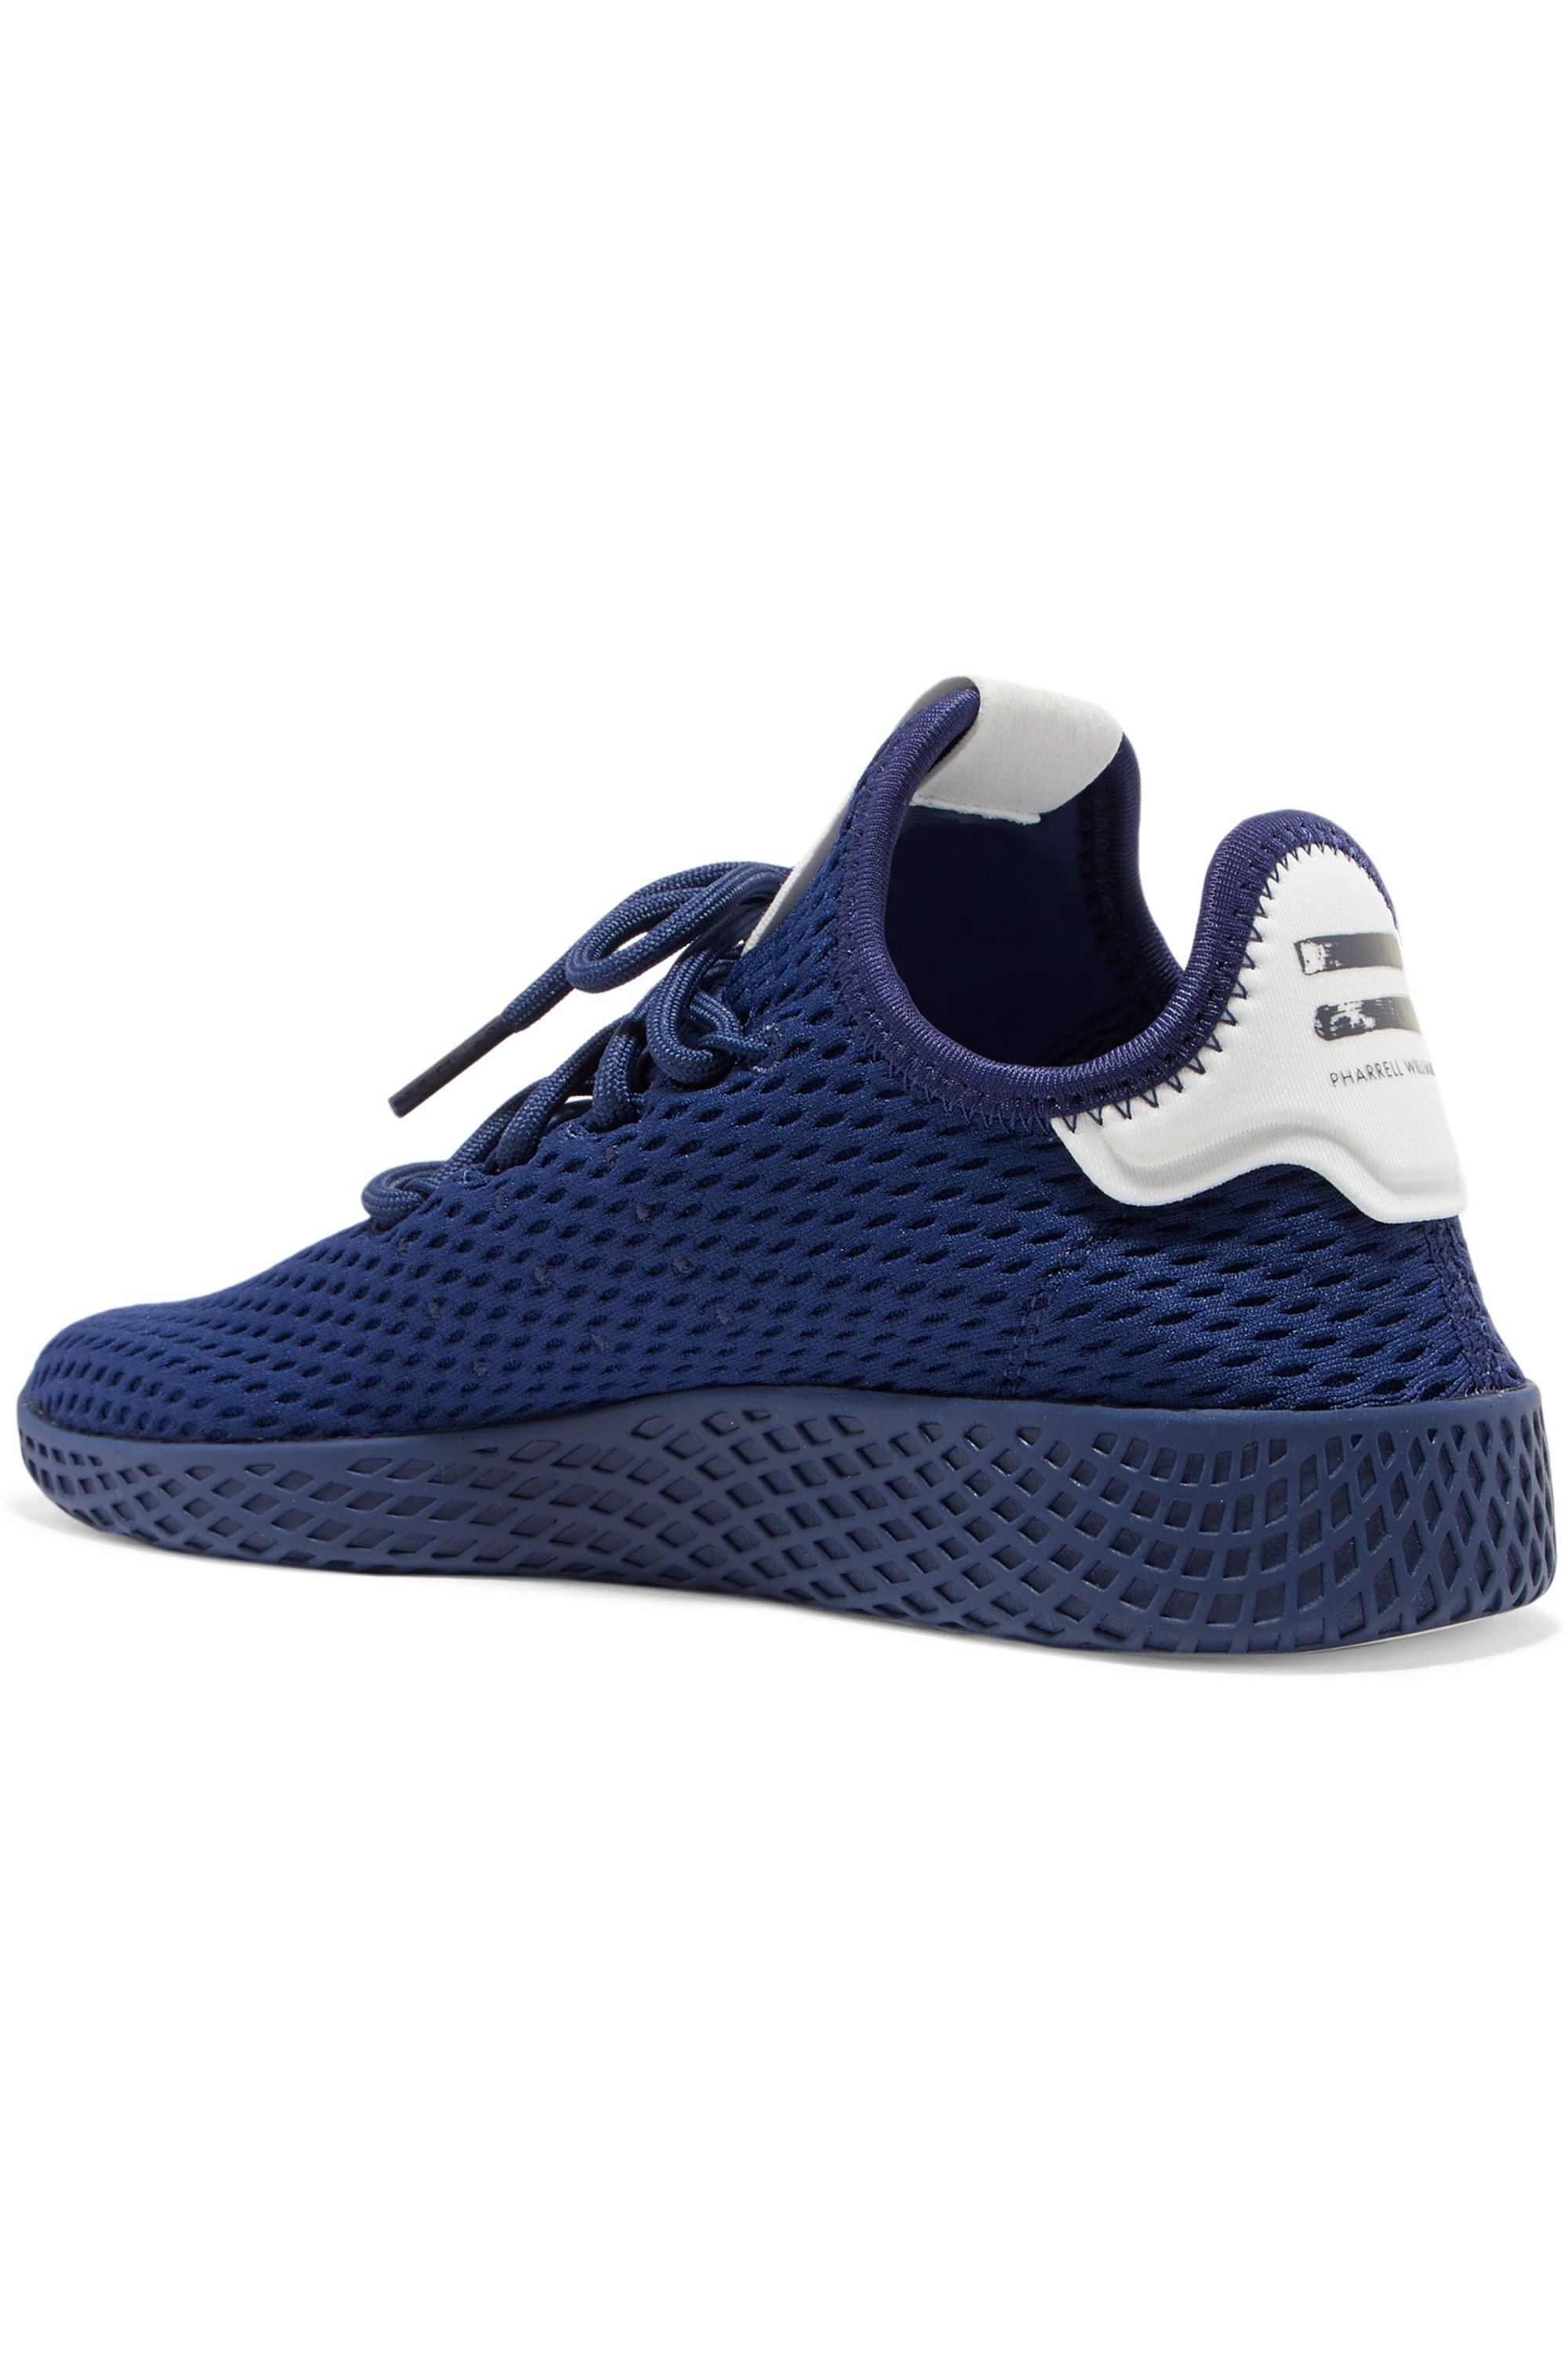 adidas Originals + Pharrell Williams Tennis Hu stretch-knit sneakers